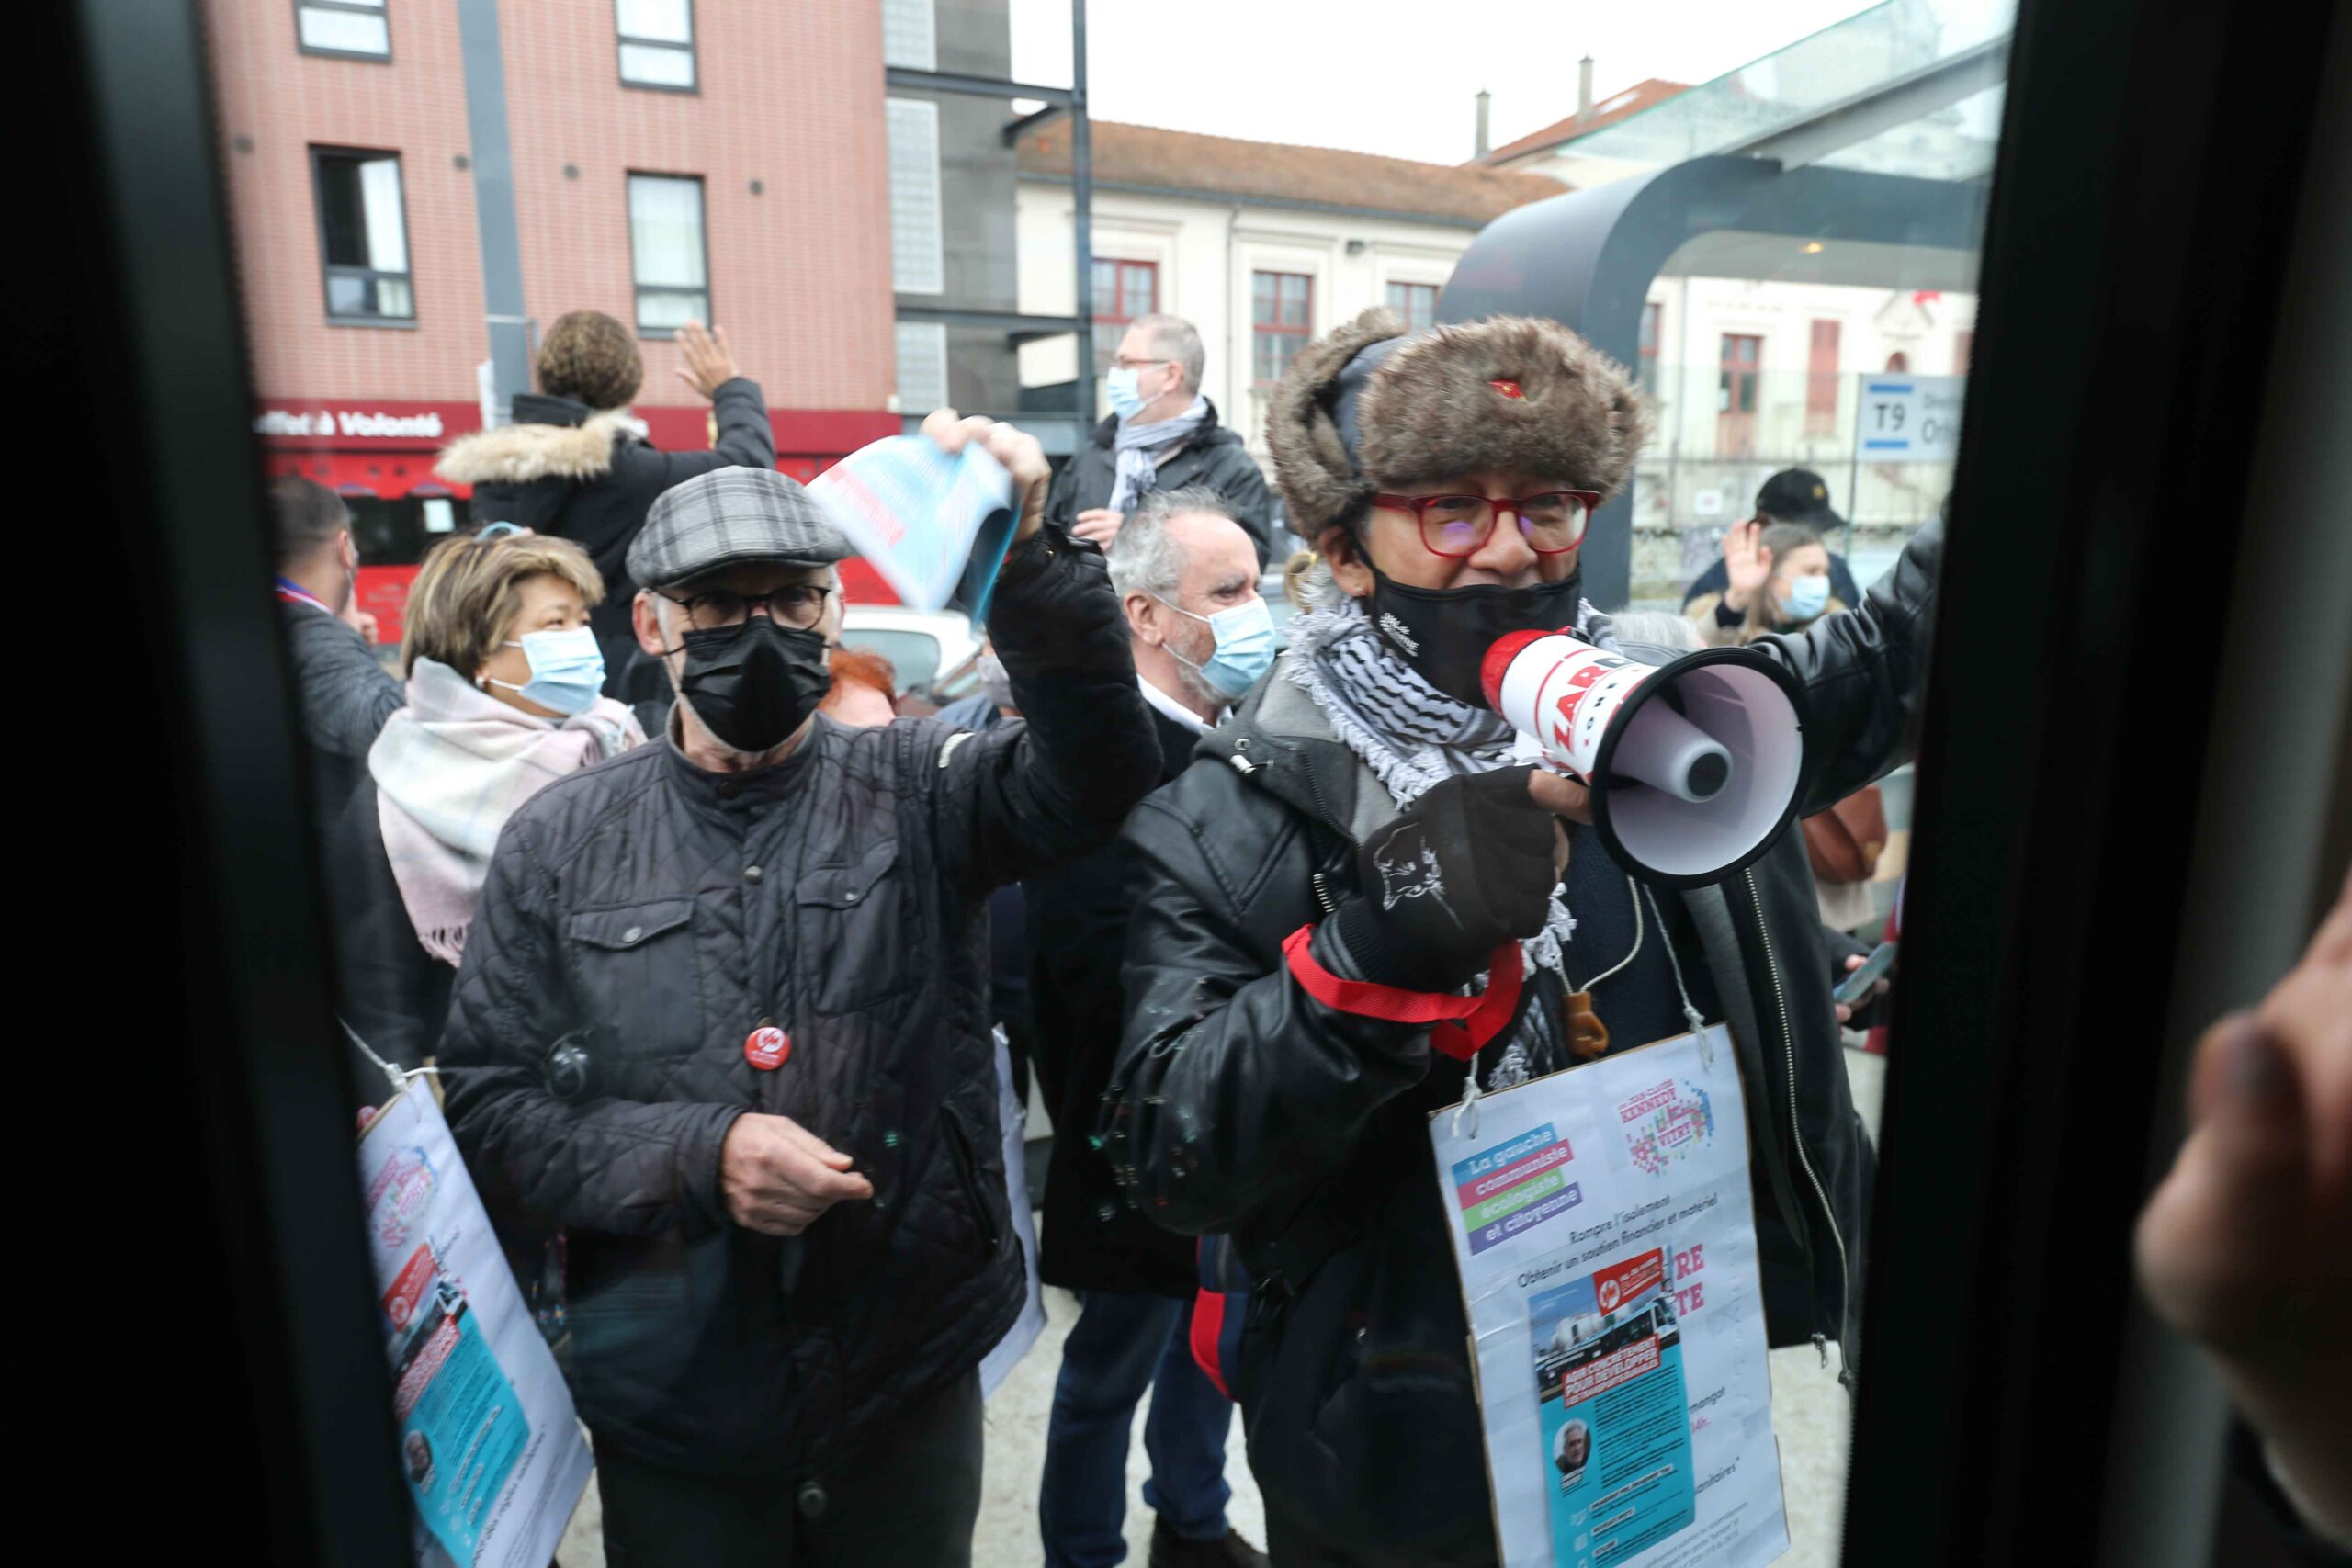 Opponents usin a magaphone demonstrate during the opening day of the new tramway T9 tram line between Porte de Choisy and Orly City, southeastern Paris, on April 10, 2021 in Vitry-sur-Seine, southeastern Paris.Line T9 connects Porte de Choisy Paris Métr